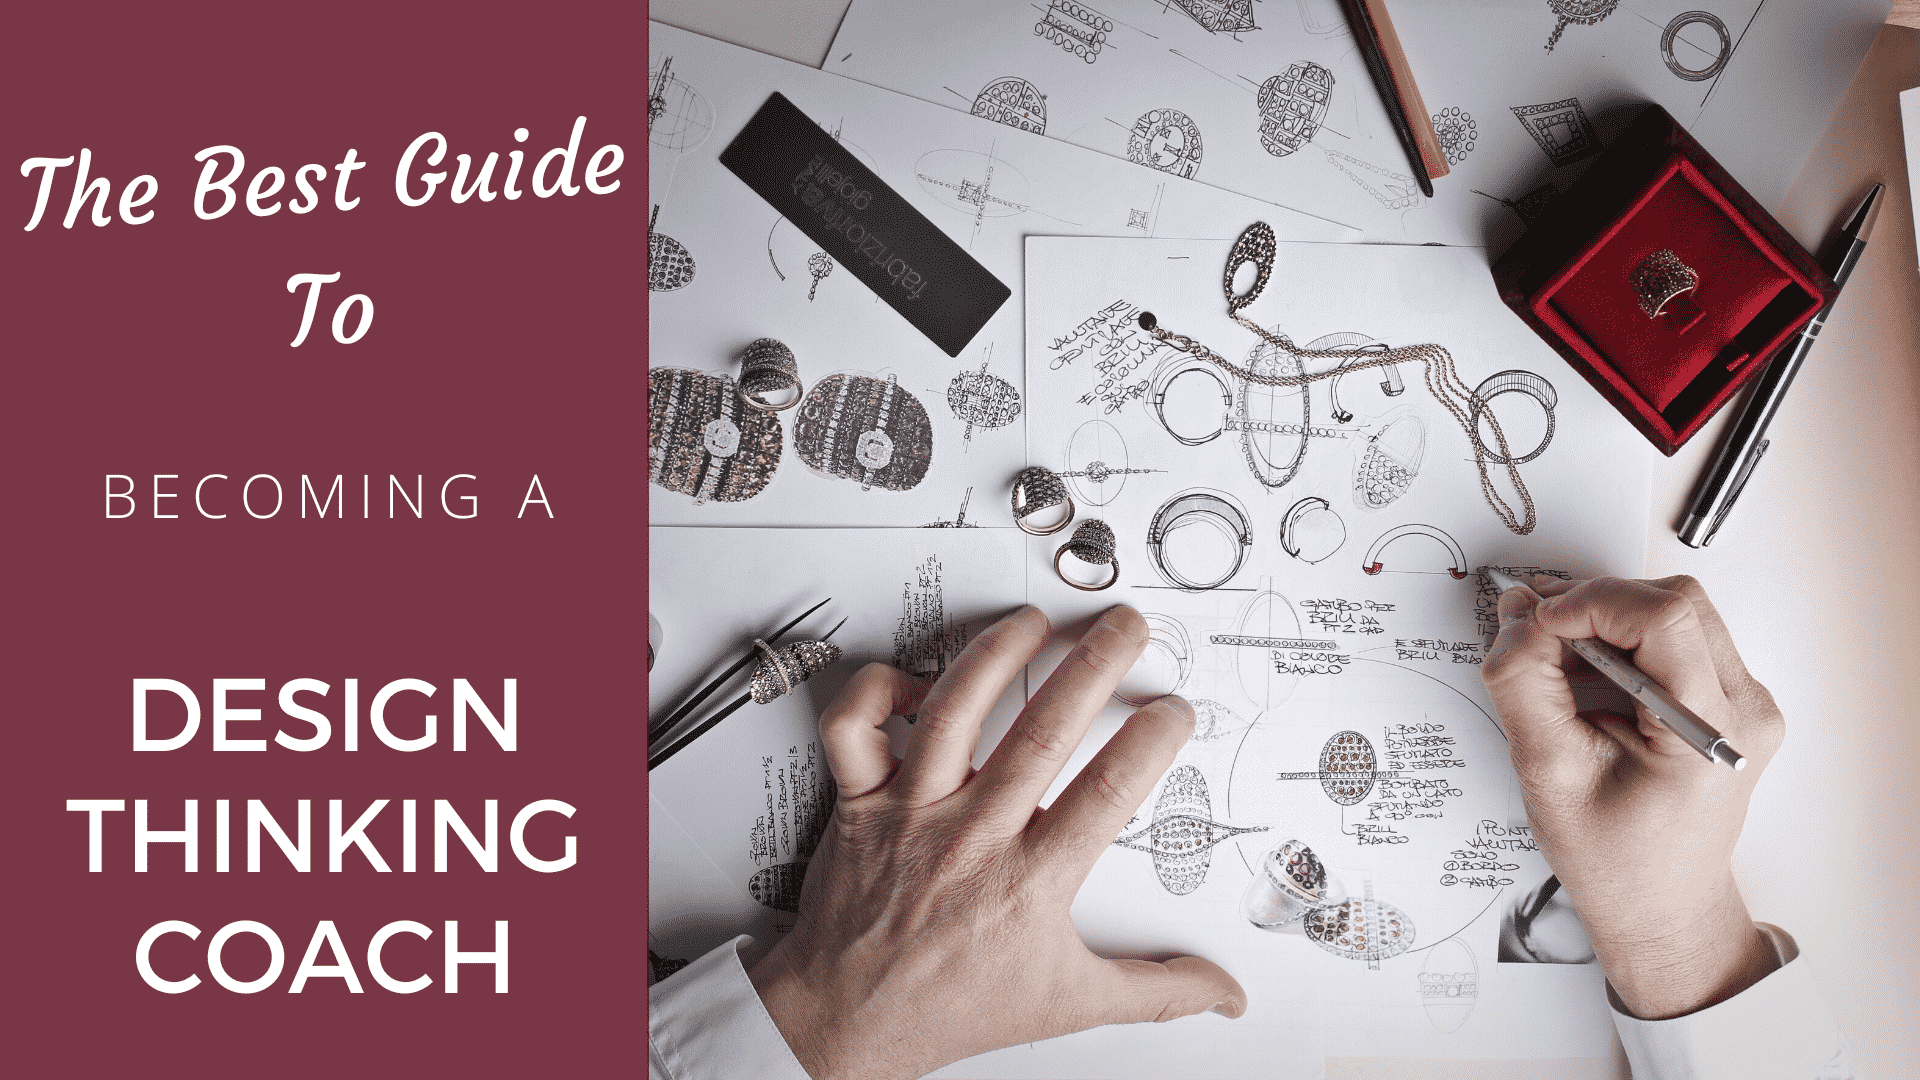 Design Thinking Coach: The Best Guide (2020) design thinking coach